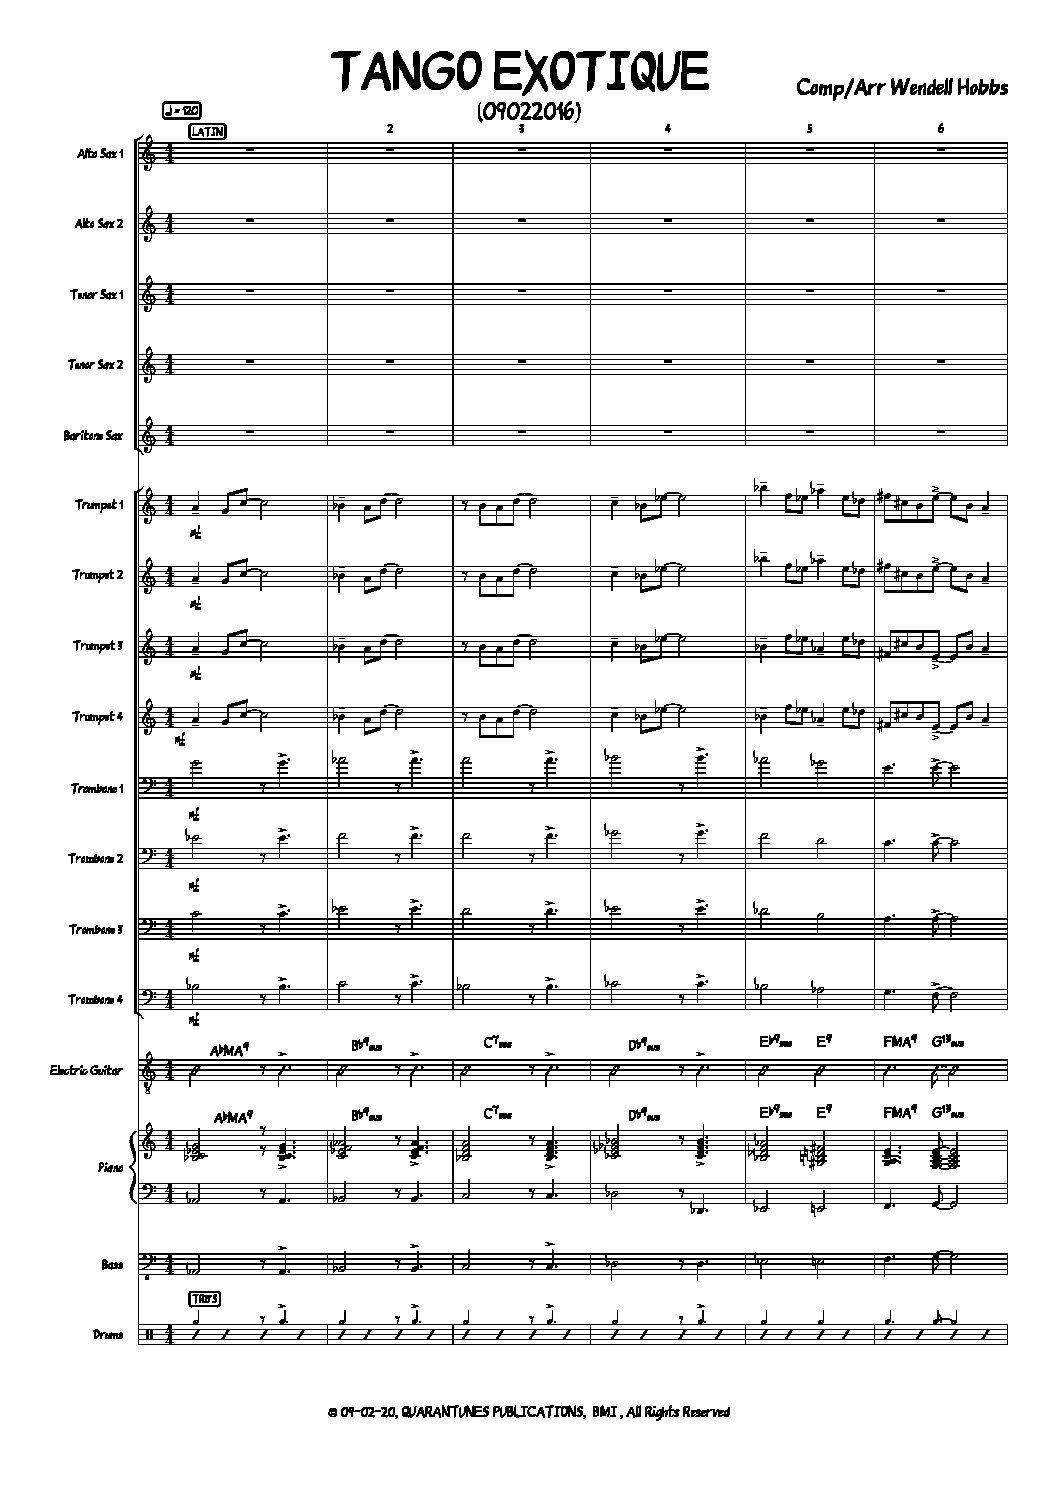 TANGO EXOTIQUE Score and Parts copy 4 pdf